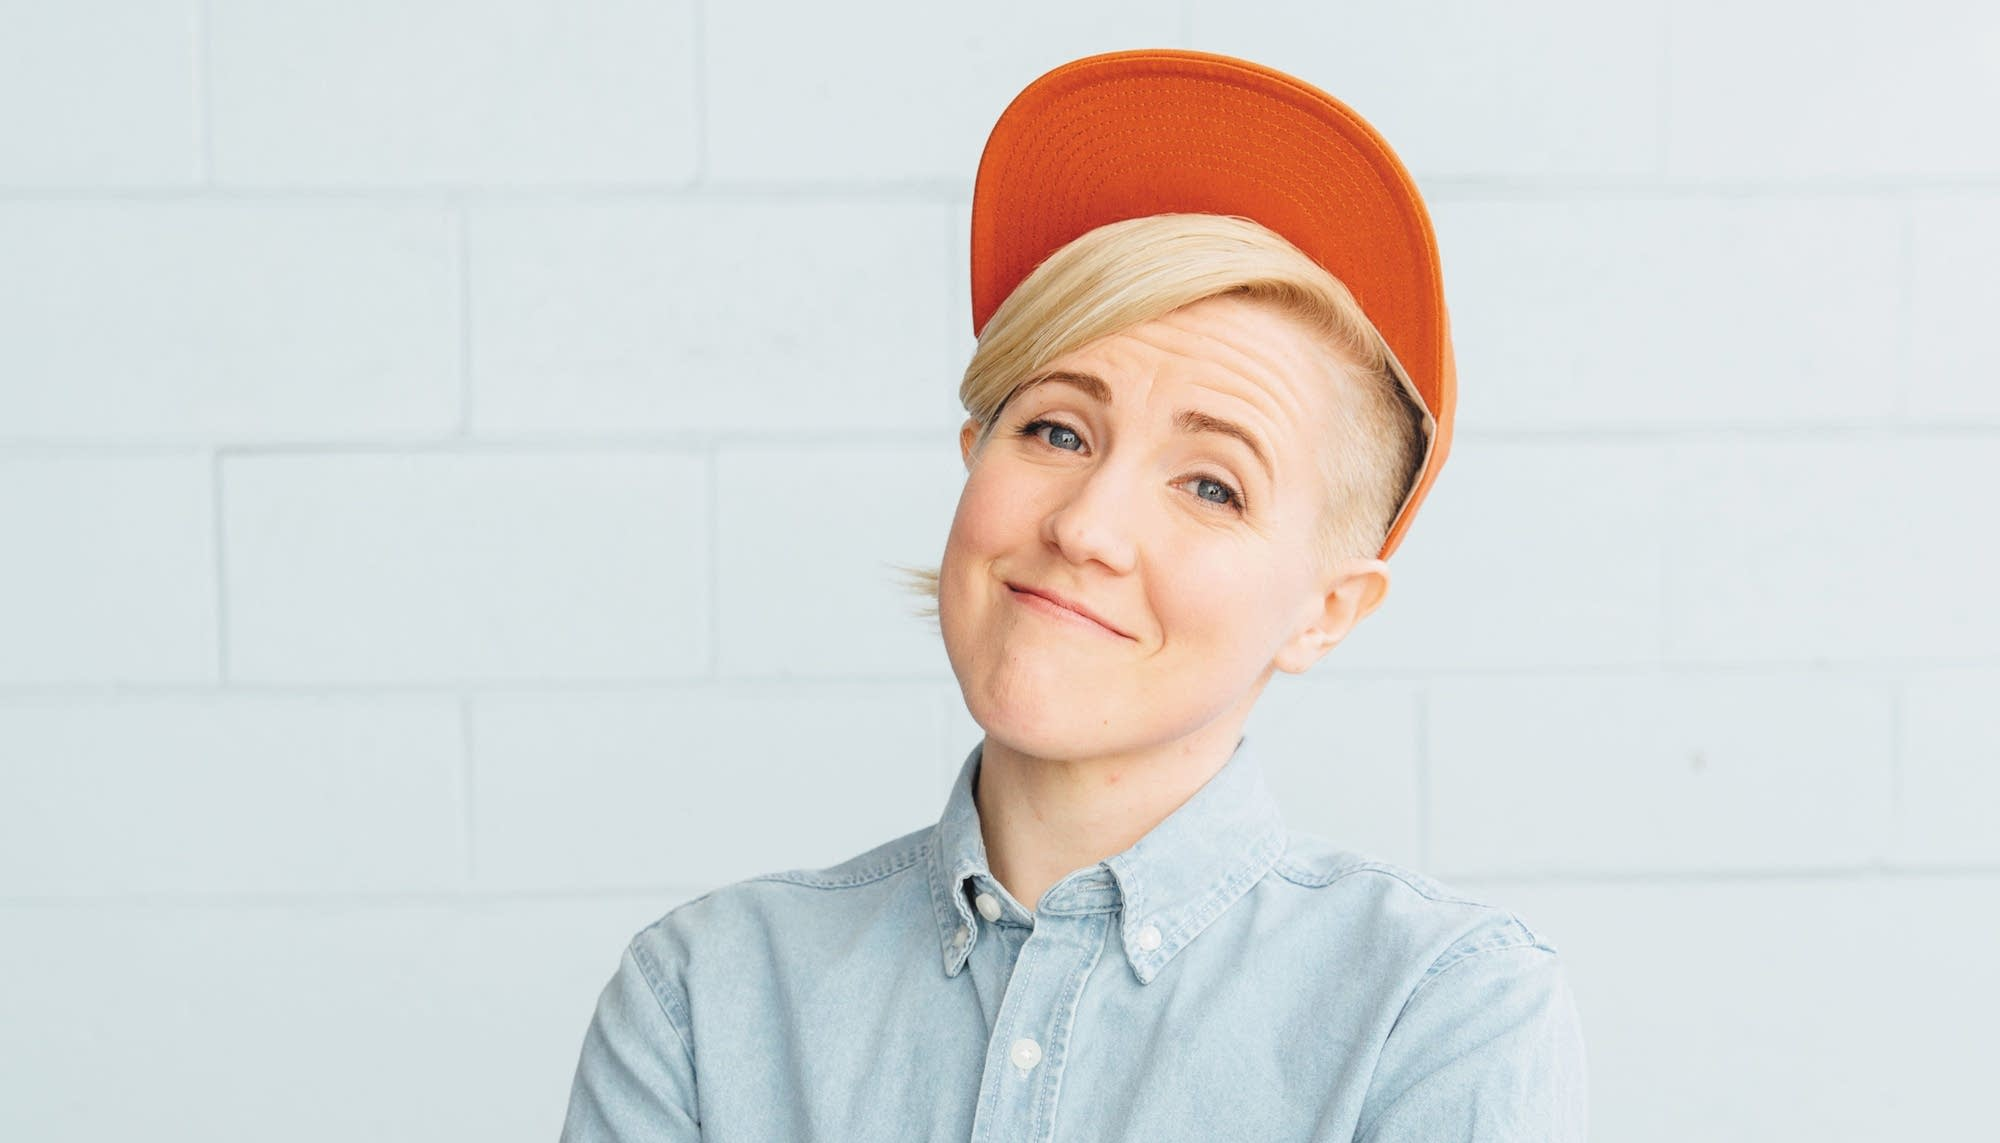 Hannah Hart Nourishes Online Community With My Drunk Kitchen The Splendid Table